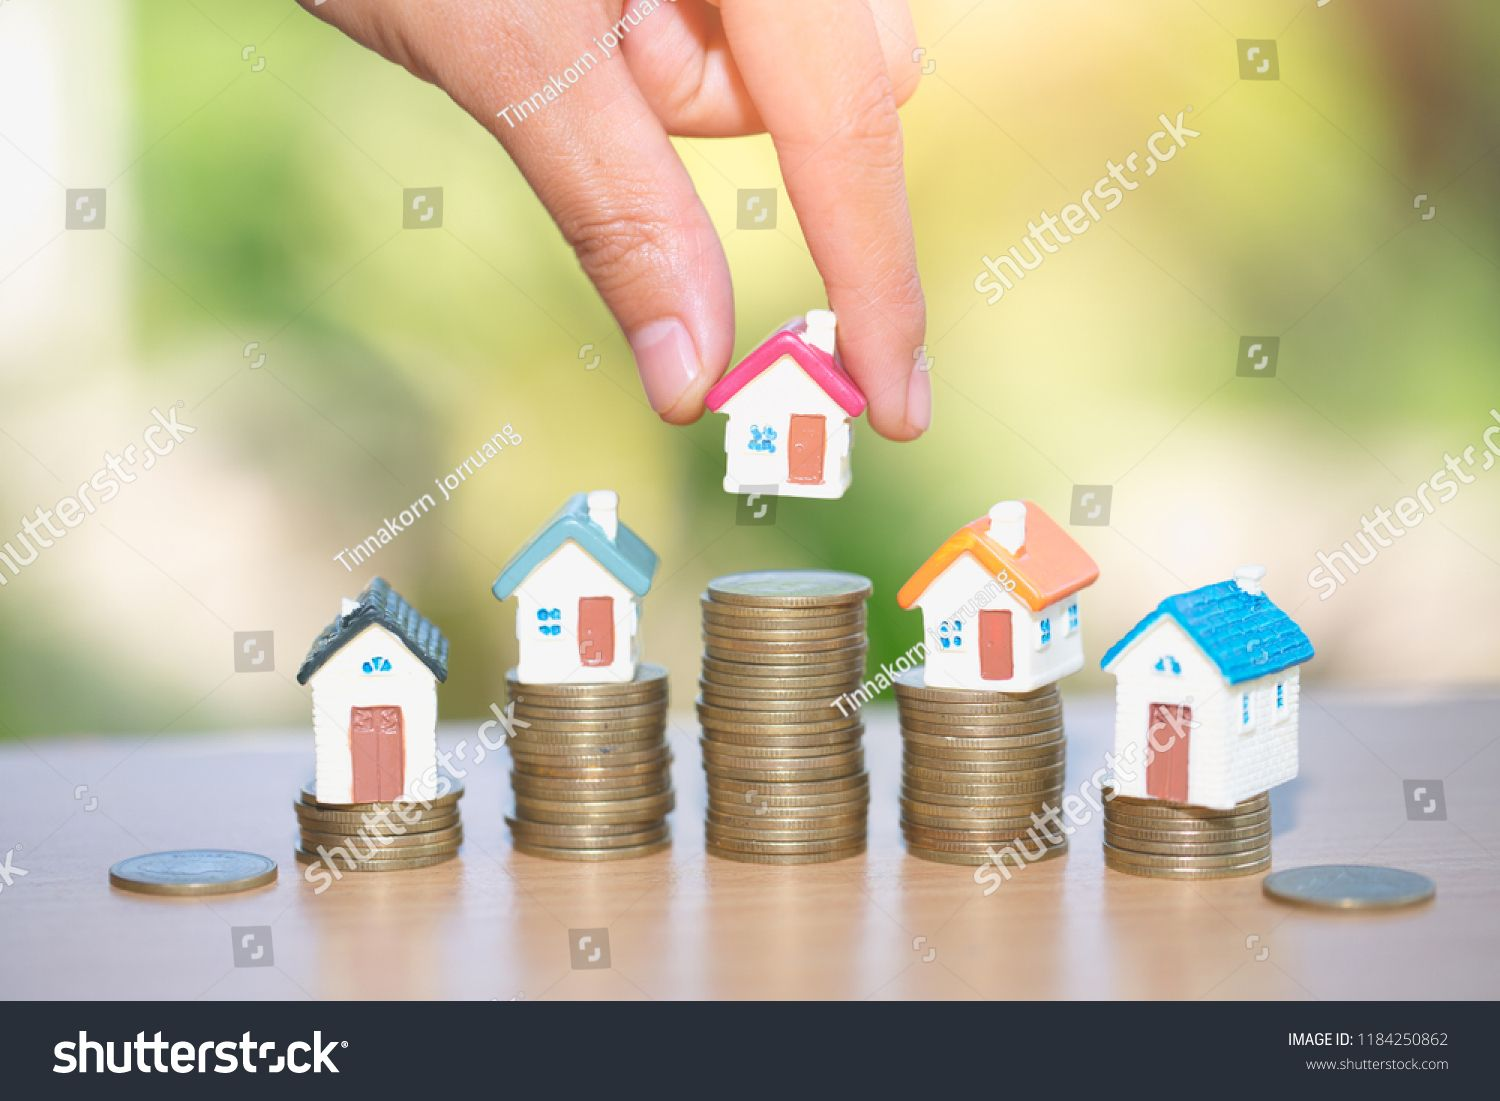 Mini house on stack of coins, Real estate investment, Save